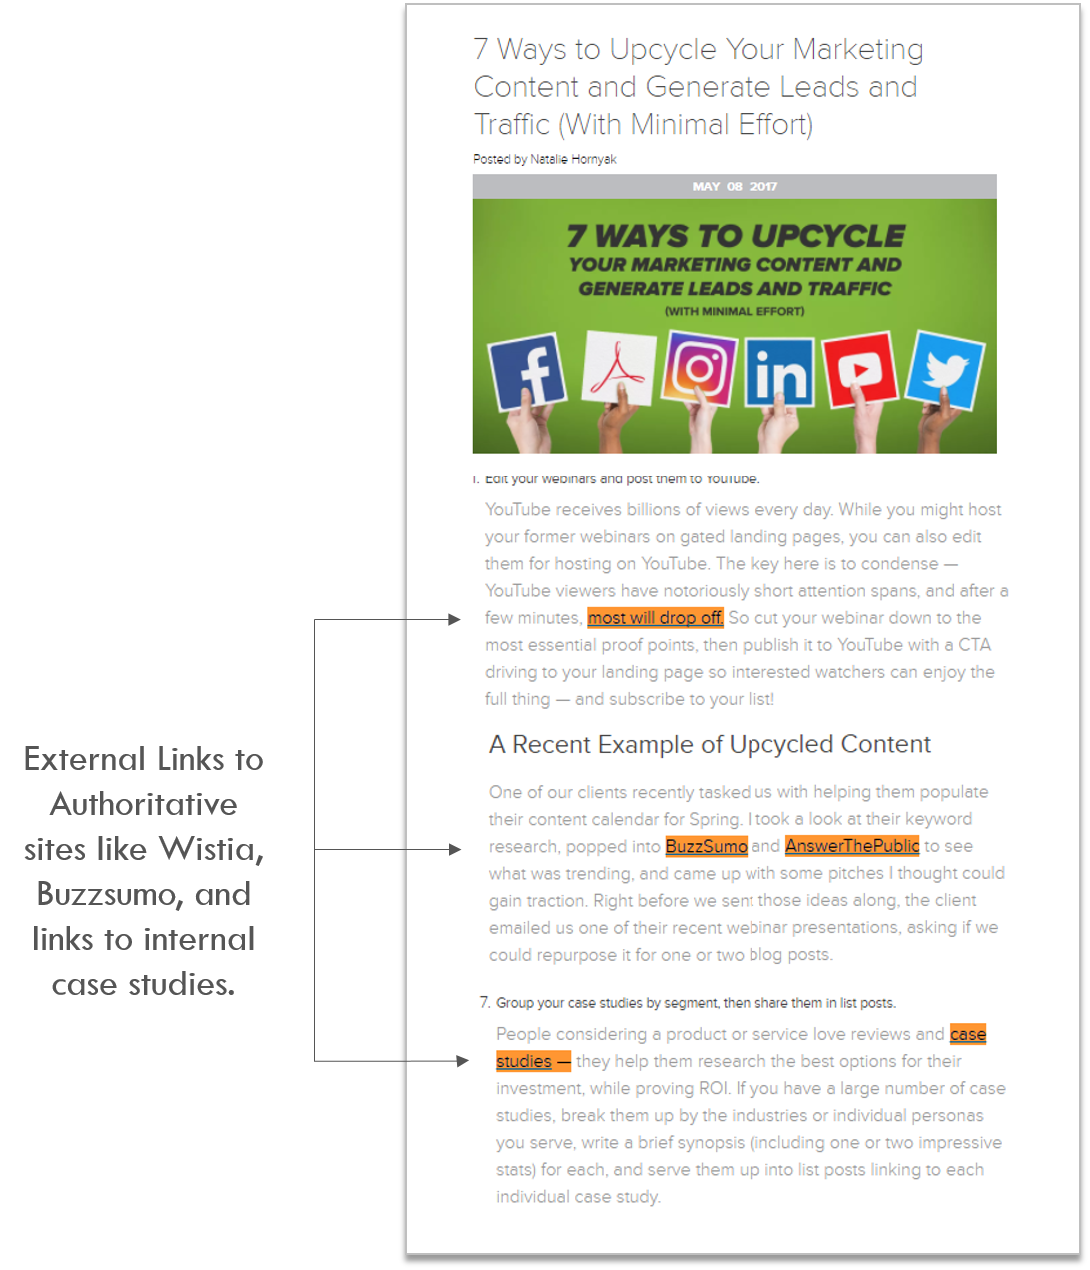 SEO Content Writing Tips Internal External Links Example Natalie Hornyak